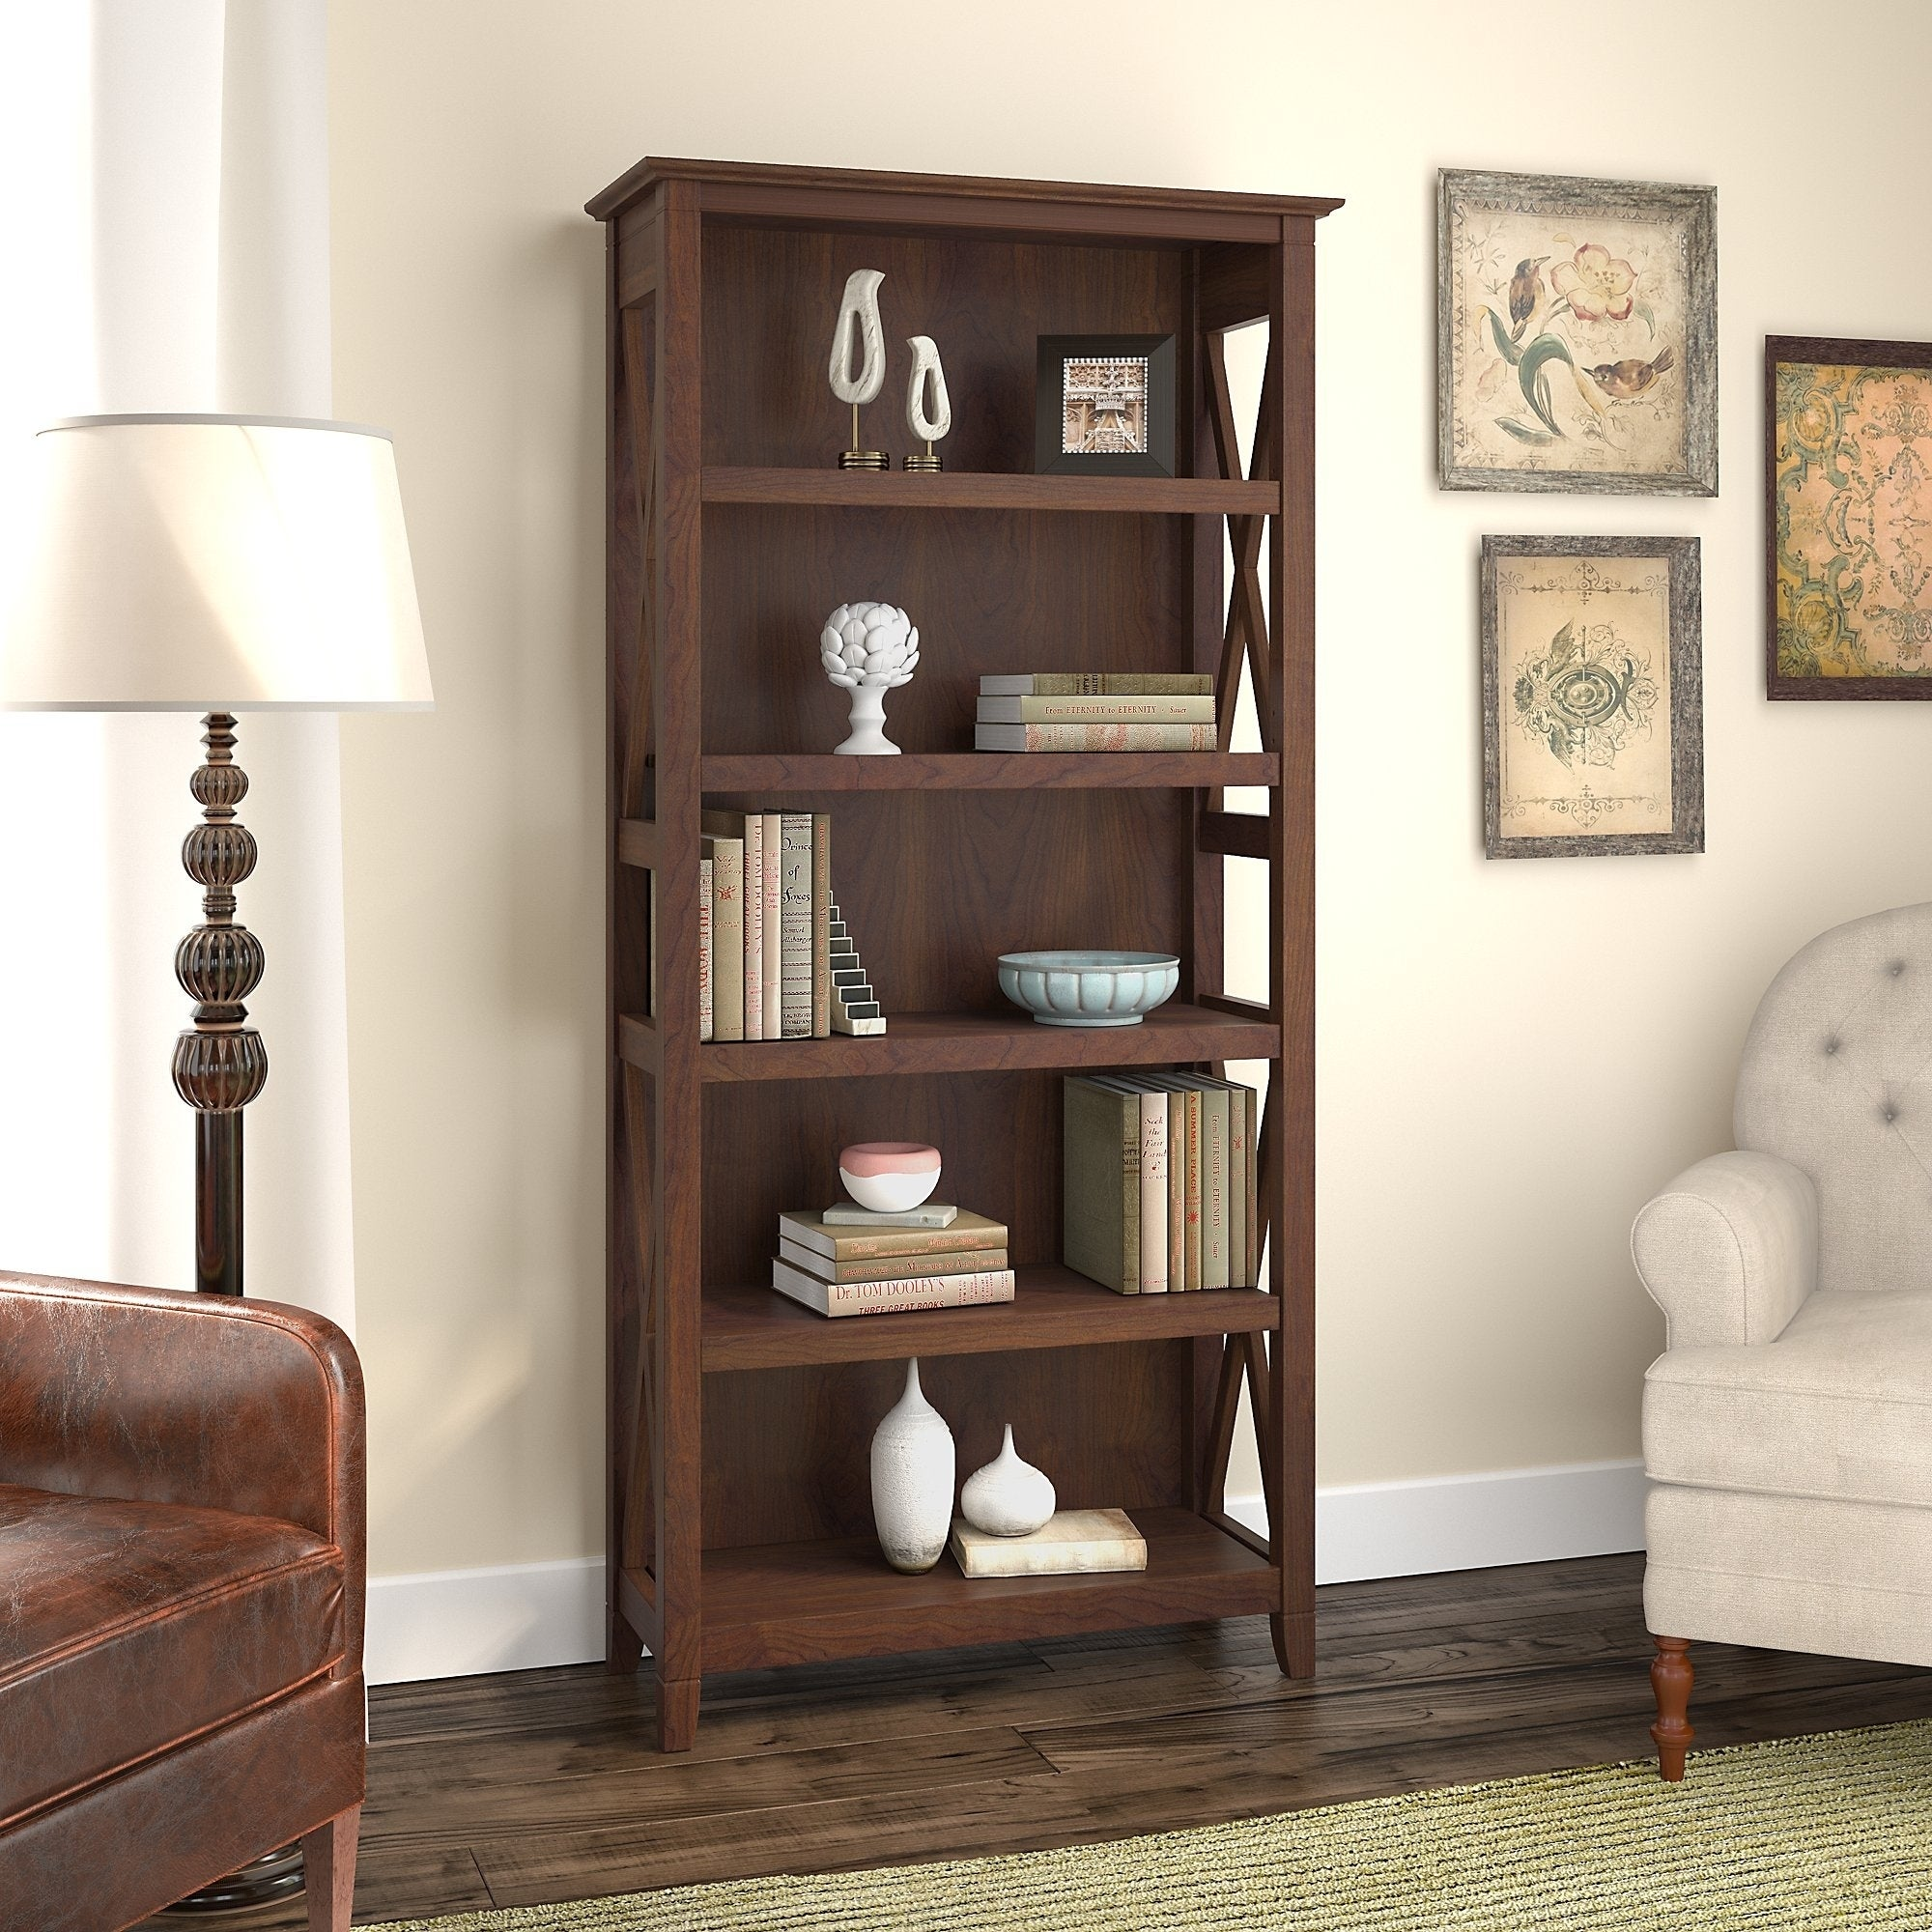 The Gray Barn Hickory Place 5 Shelf Bookcase 31 73 L X 12 64 W X 65 98 H